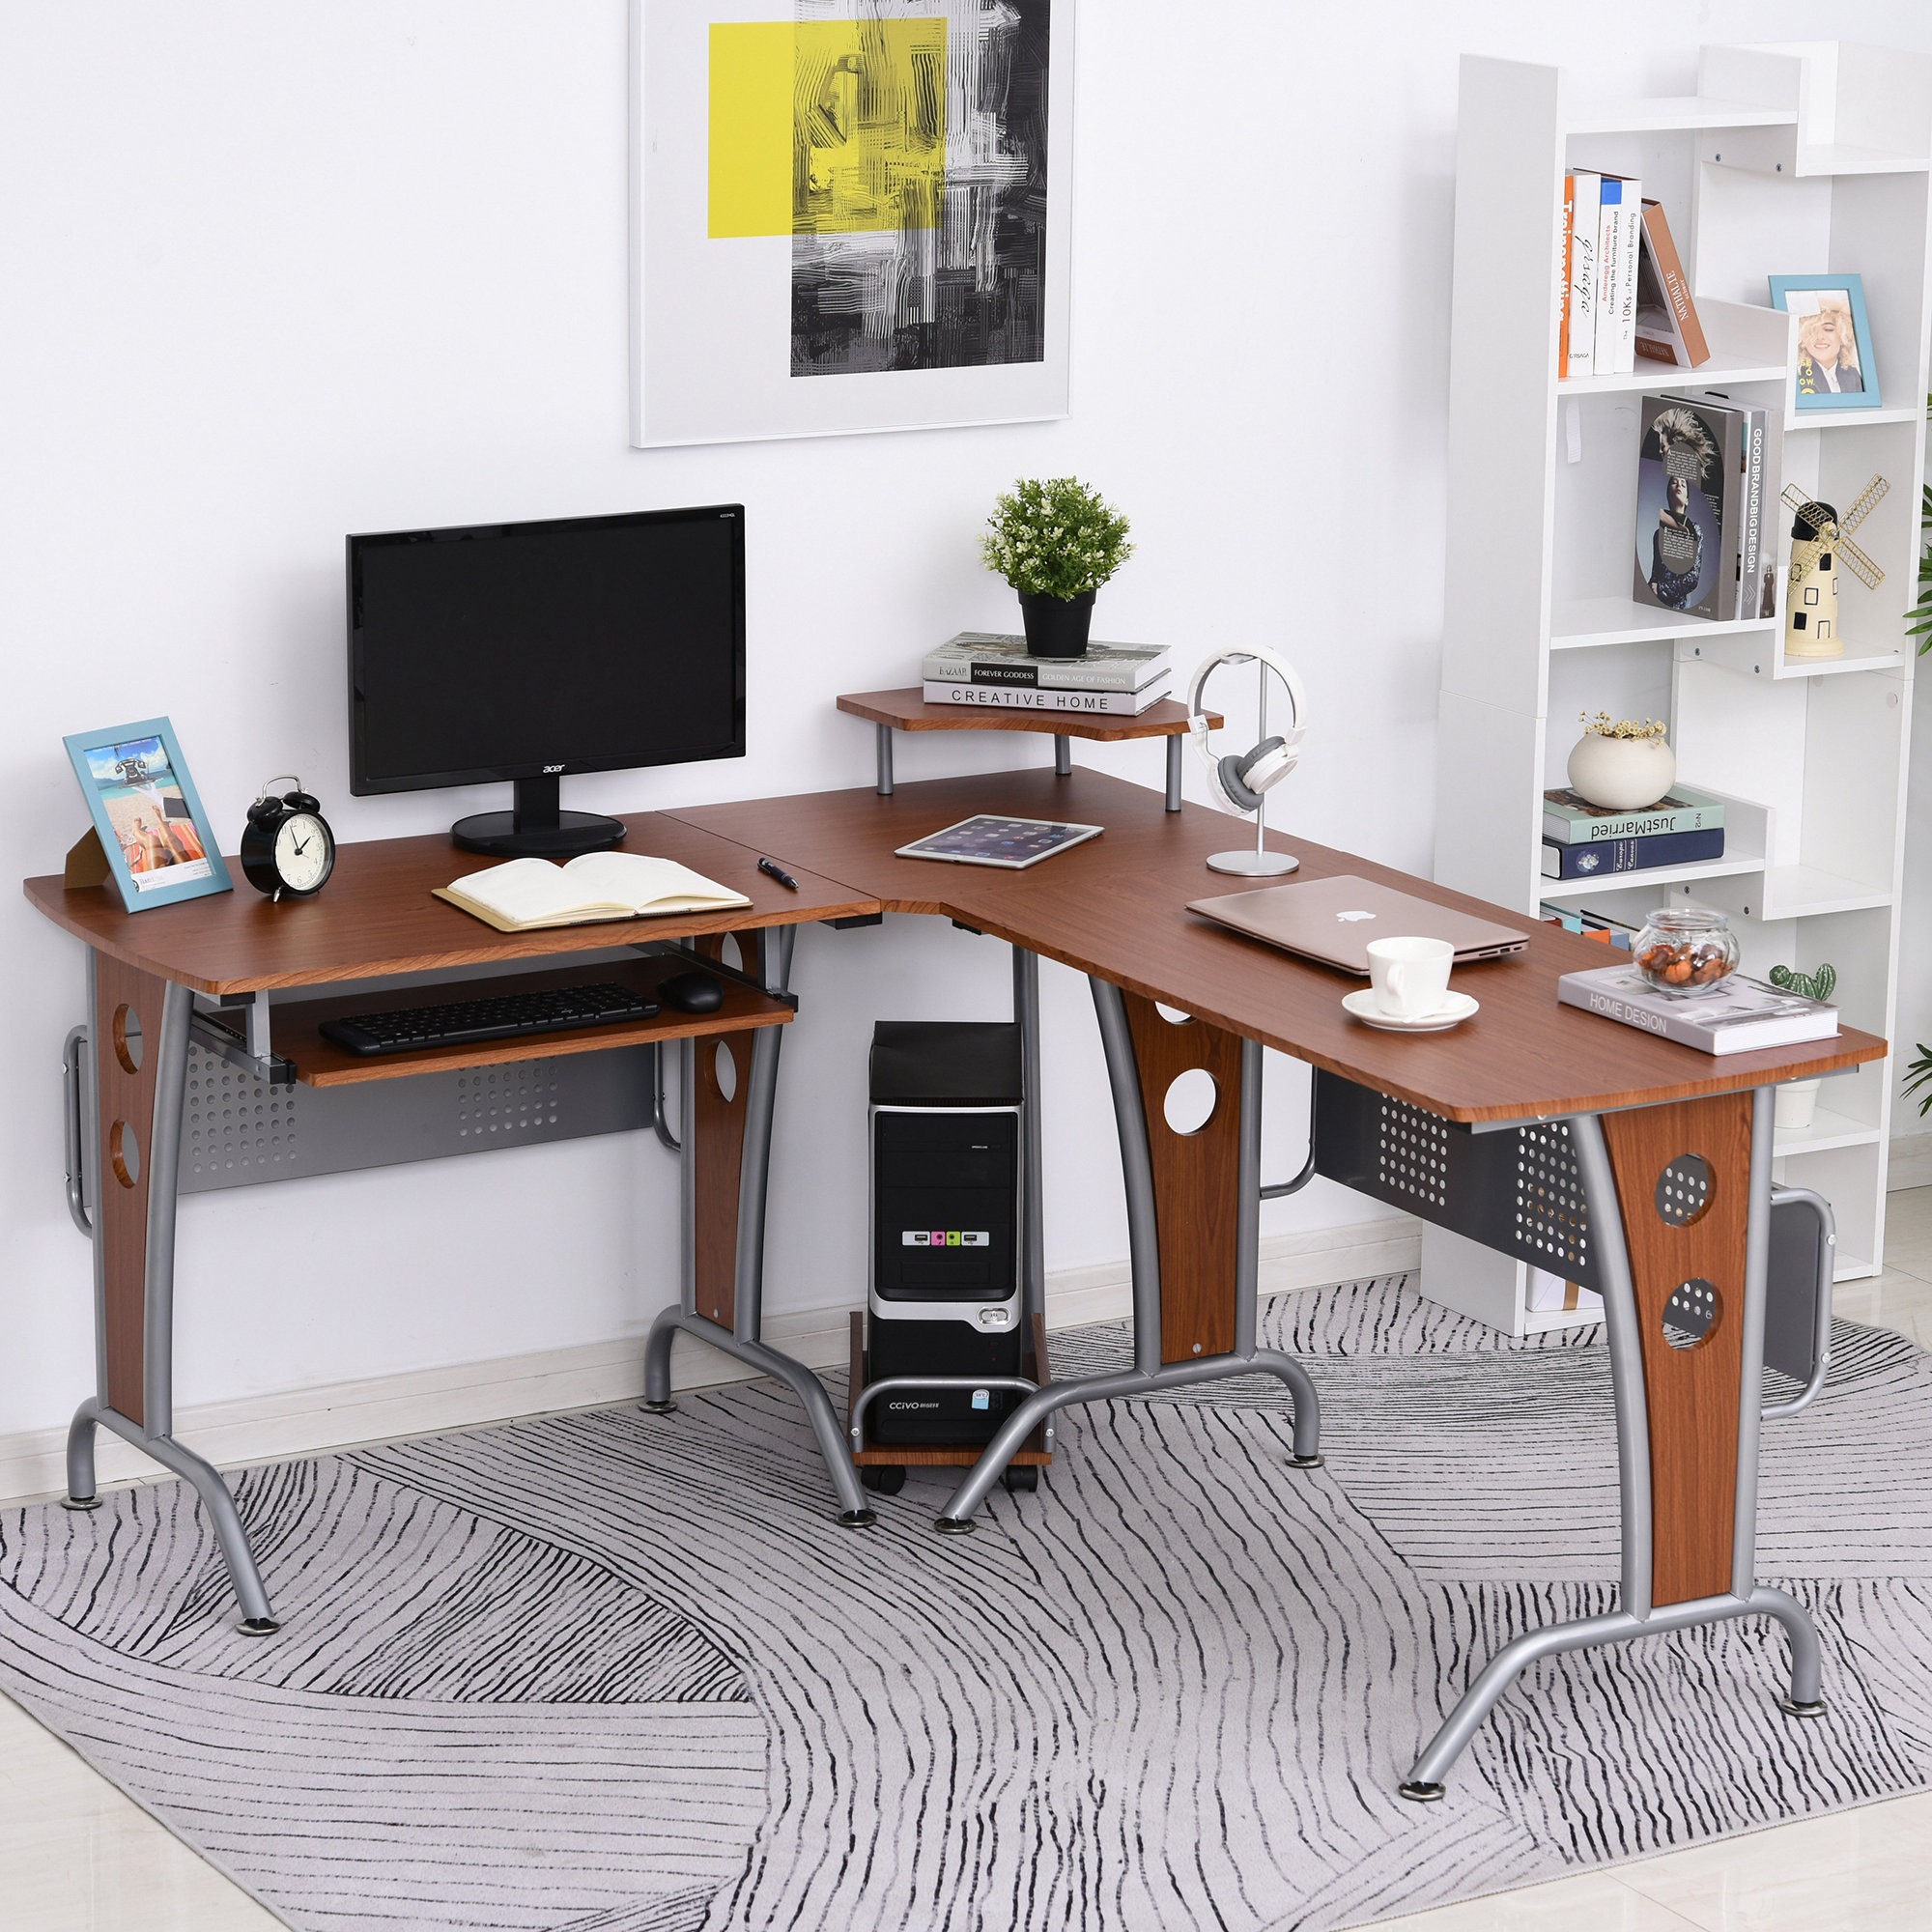 Details about HOMCOM L-Shaped Corner Computer Desk PC Table Workstation  with Keyboard Tray